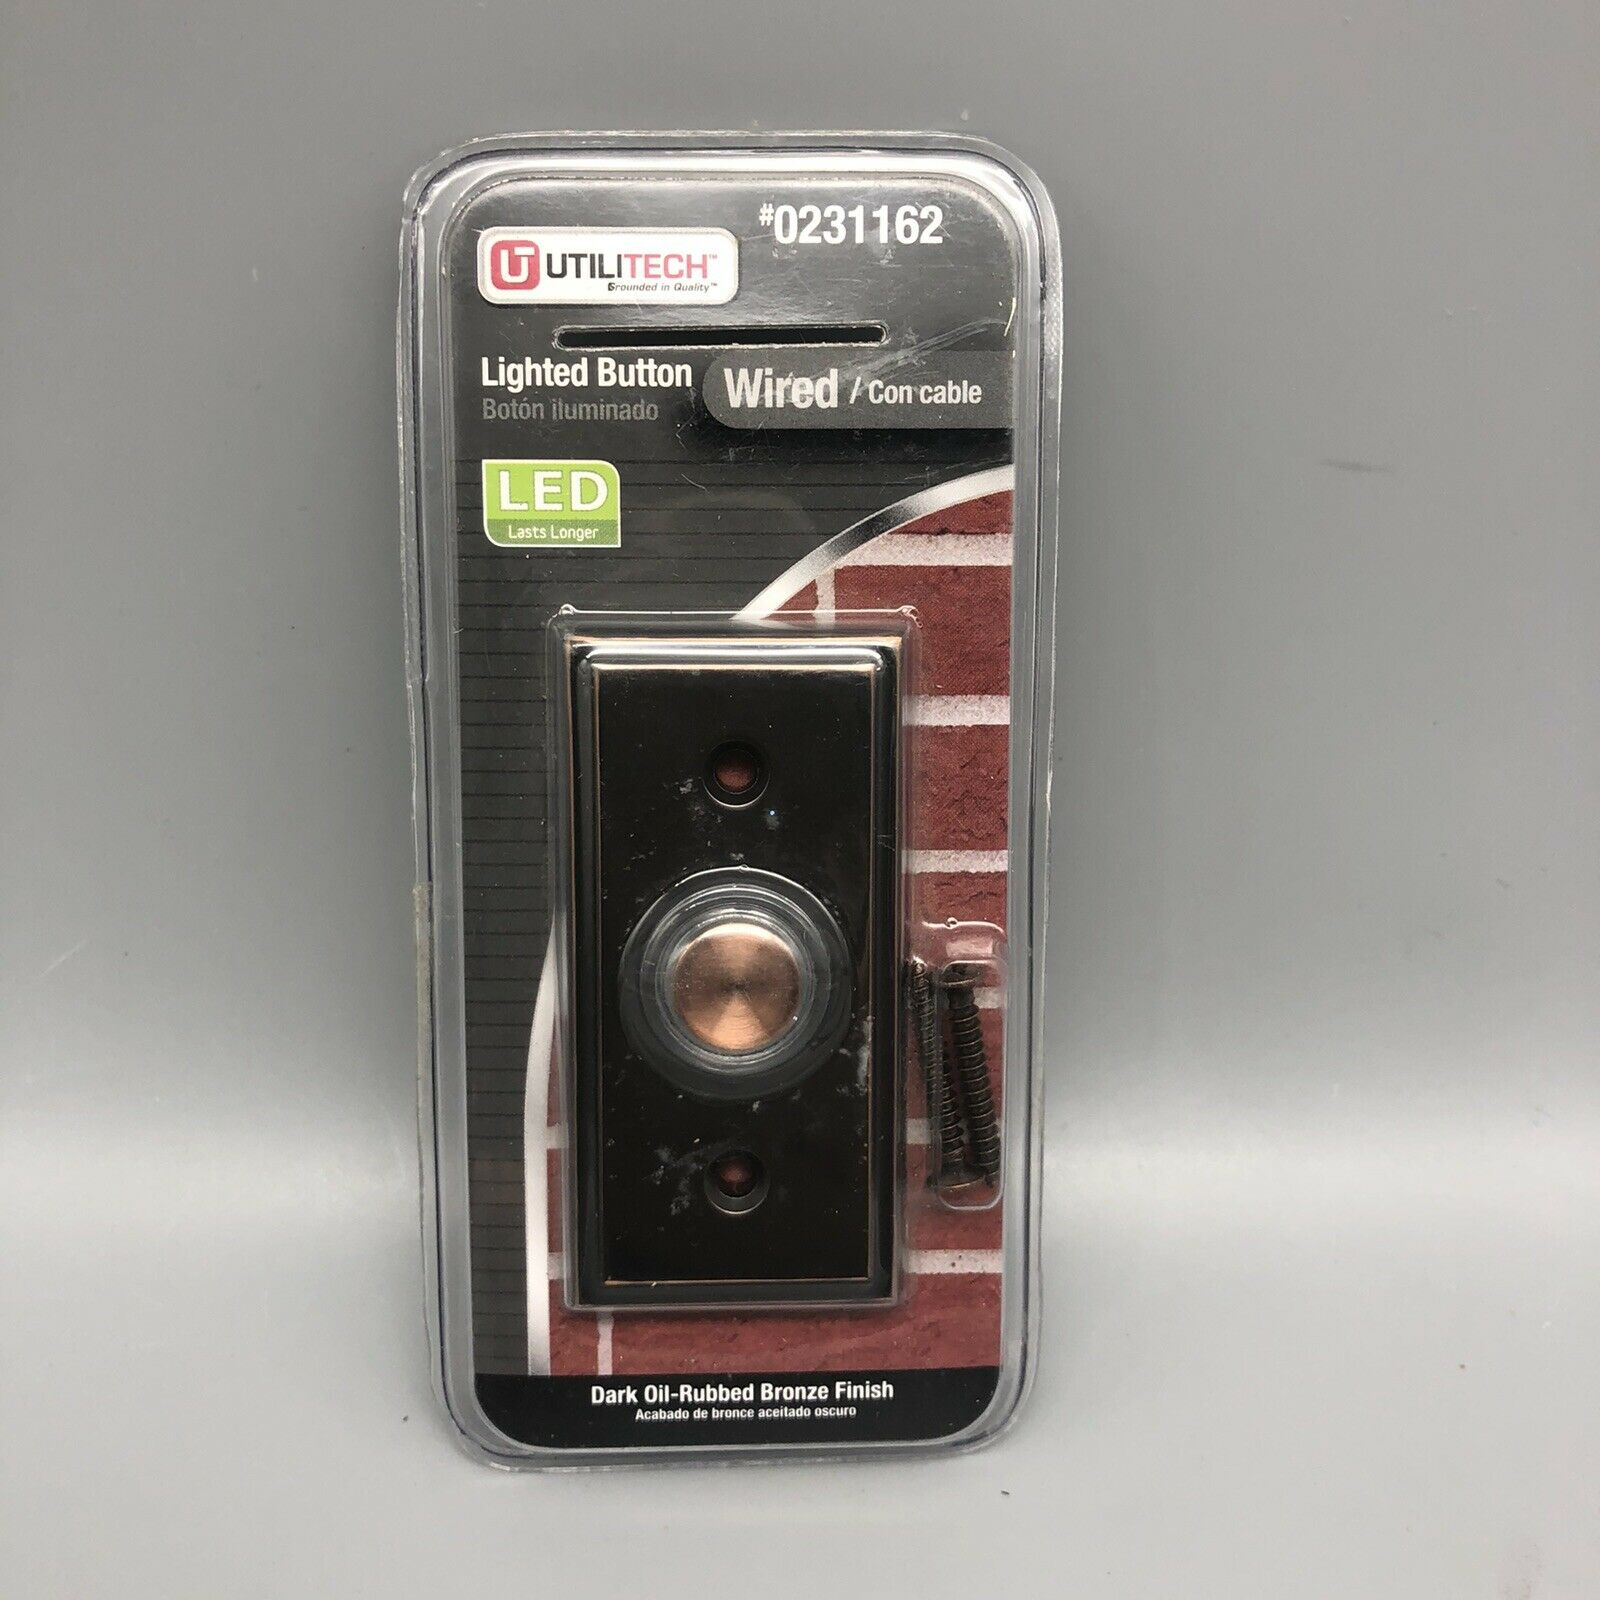 Picture of: Utilitech Led Lighted Doorbell Button Bronze Finish Model 0358558 For Sale Online Ebay